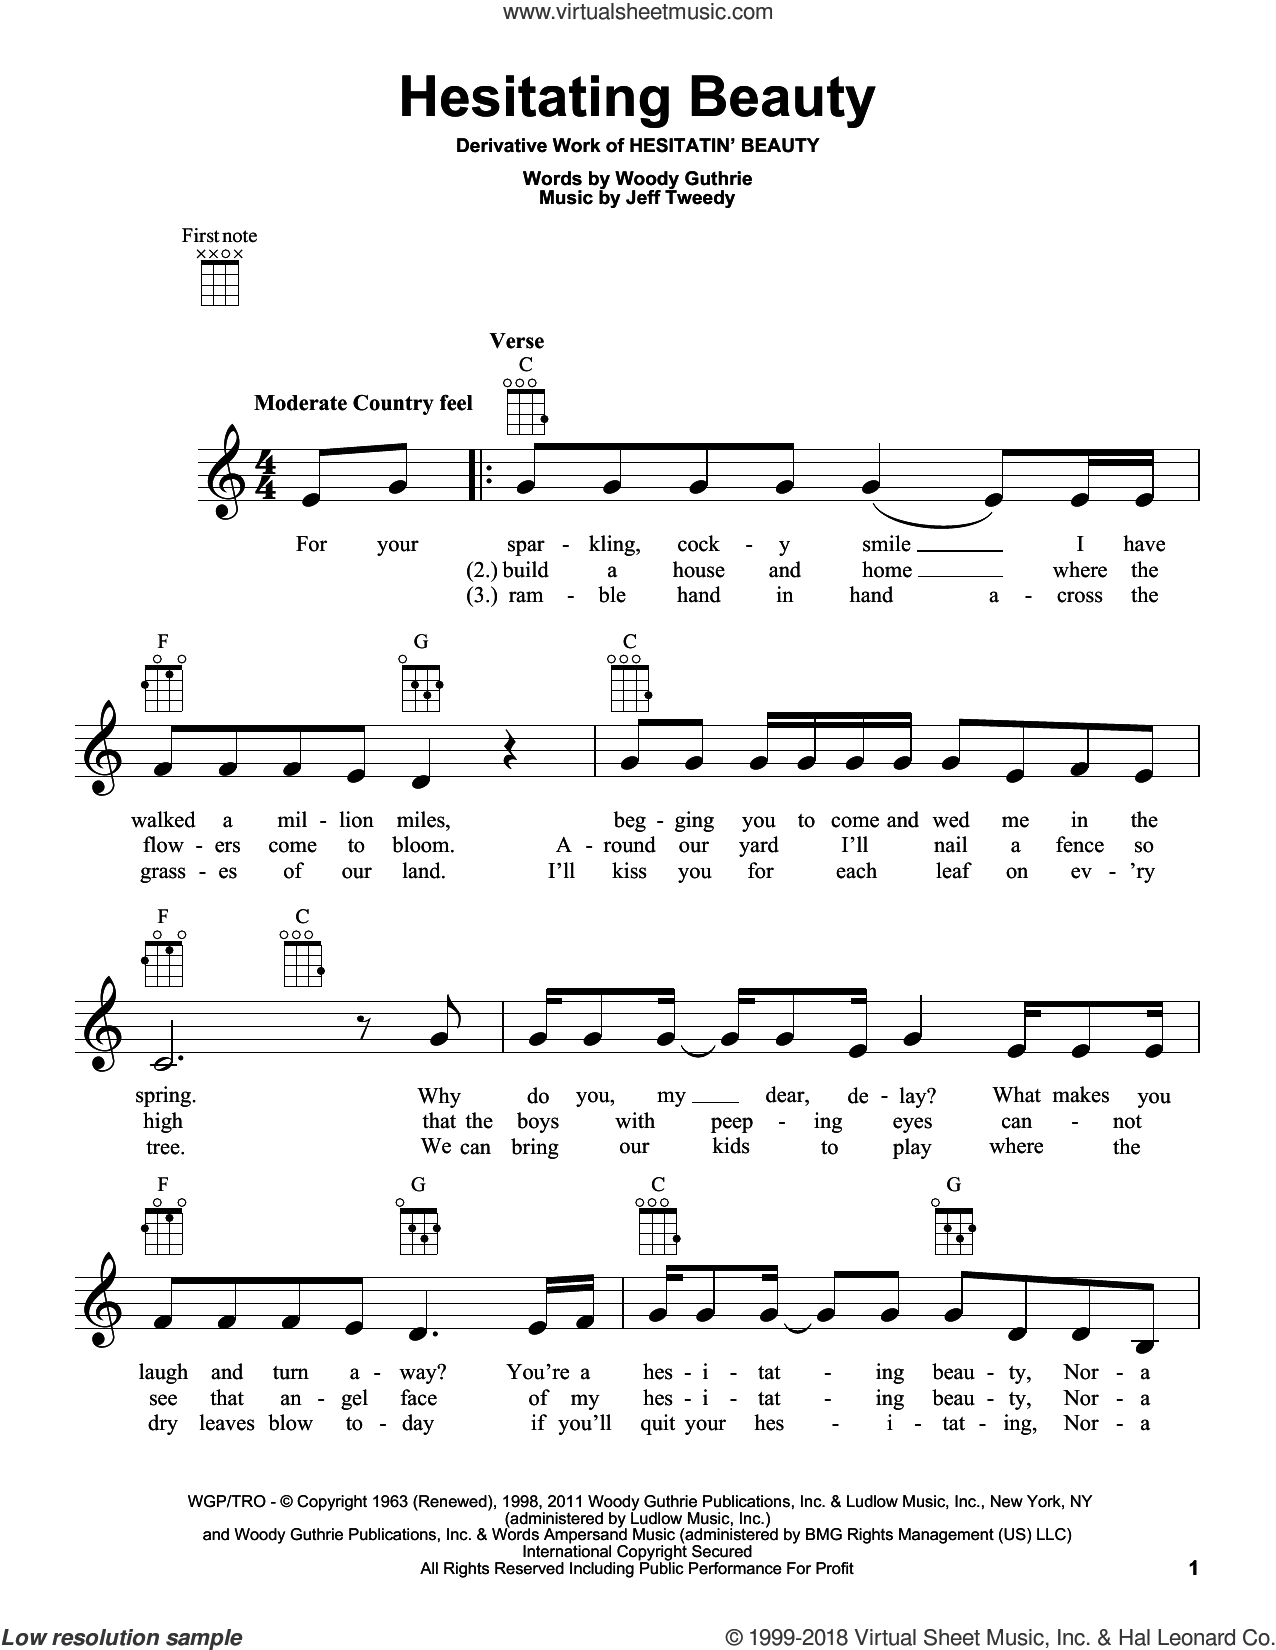 Hesitating Beauty sheet music for ukulele by Woody Guthrie and Jeff Tweedy, intermediate skill level